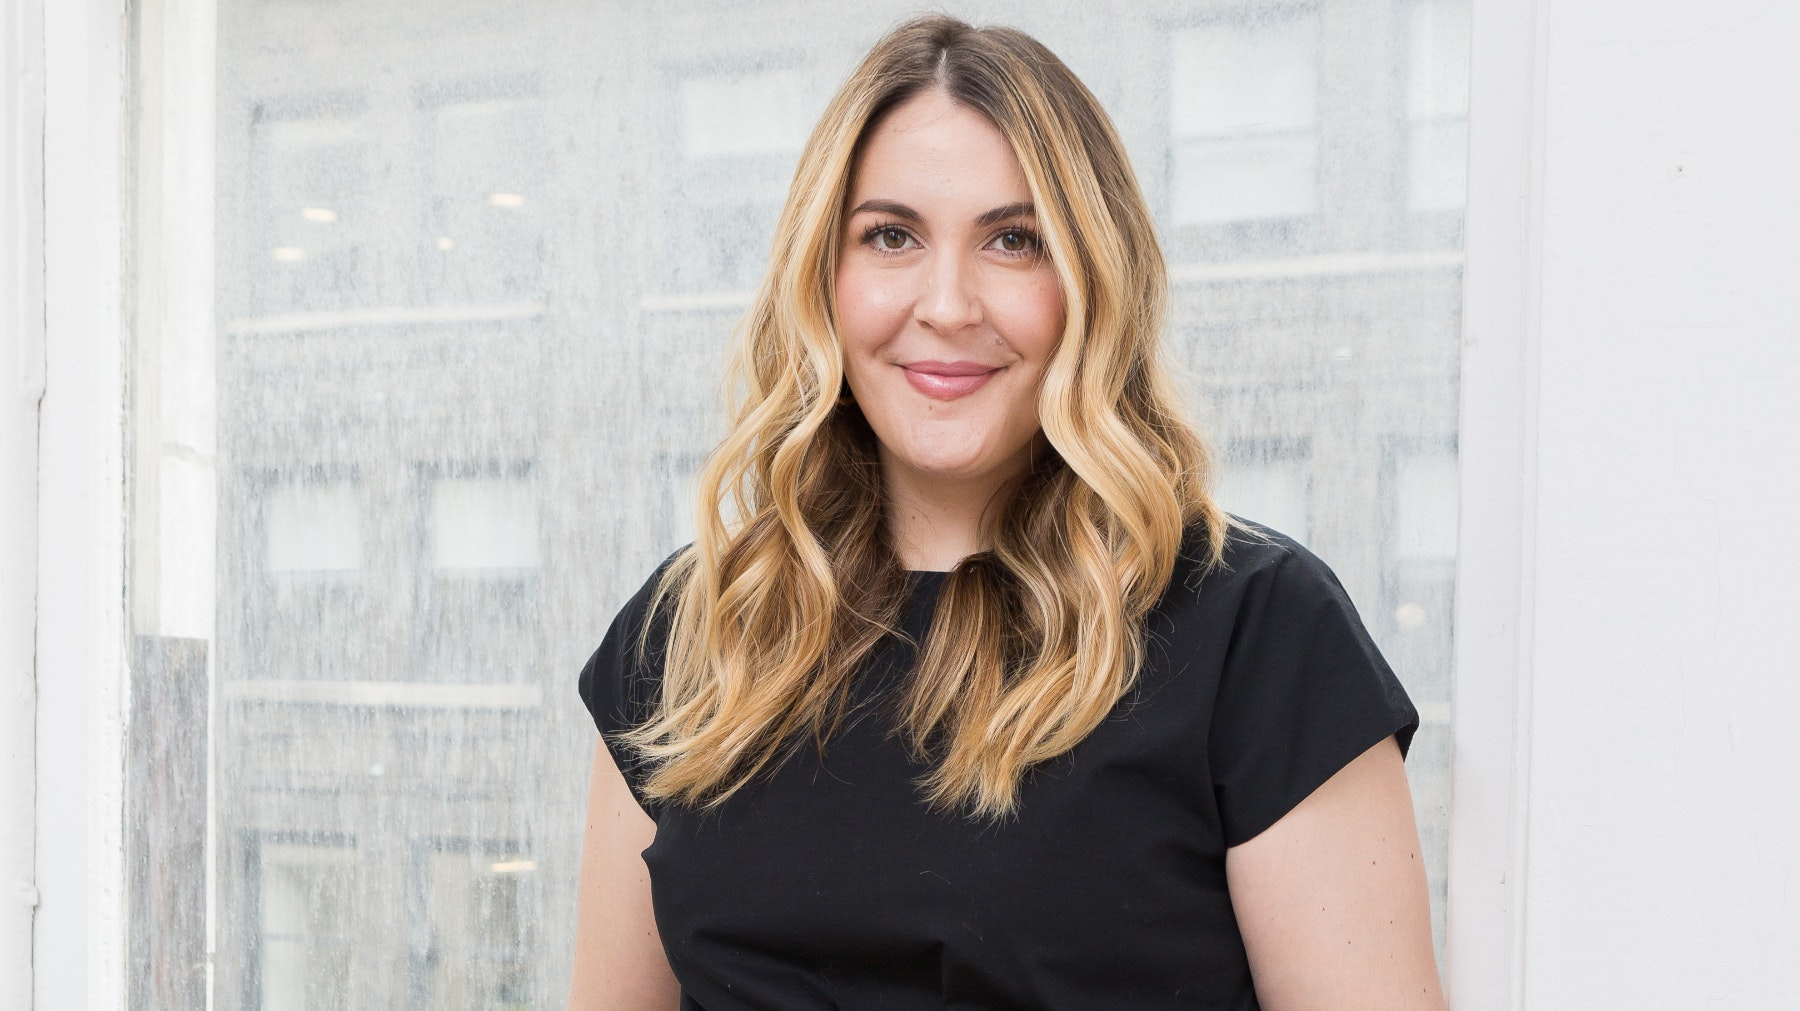 Glowbar CEO Rachel Liverman Shares Her Secrets to Smooth Skin